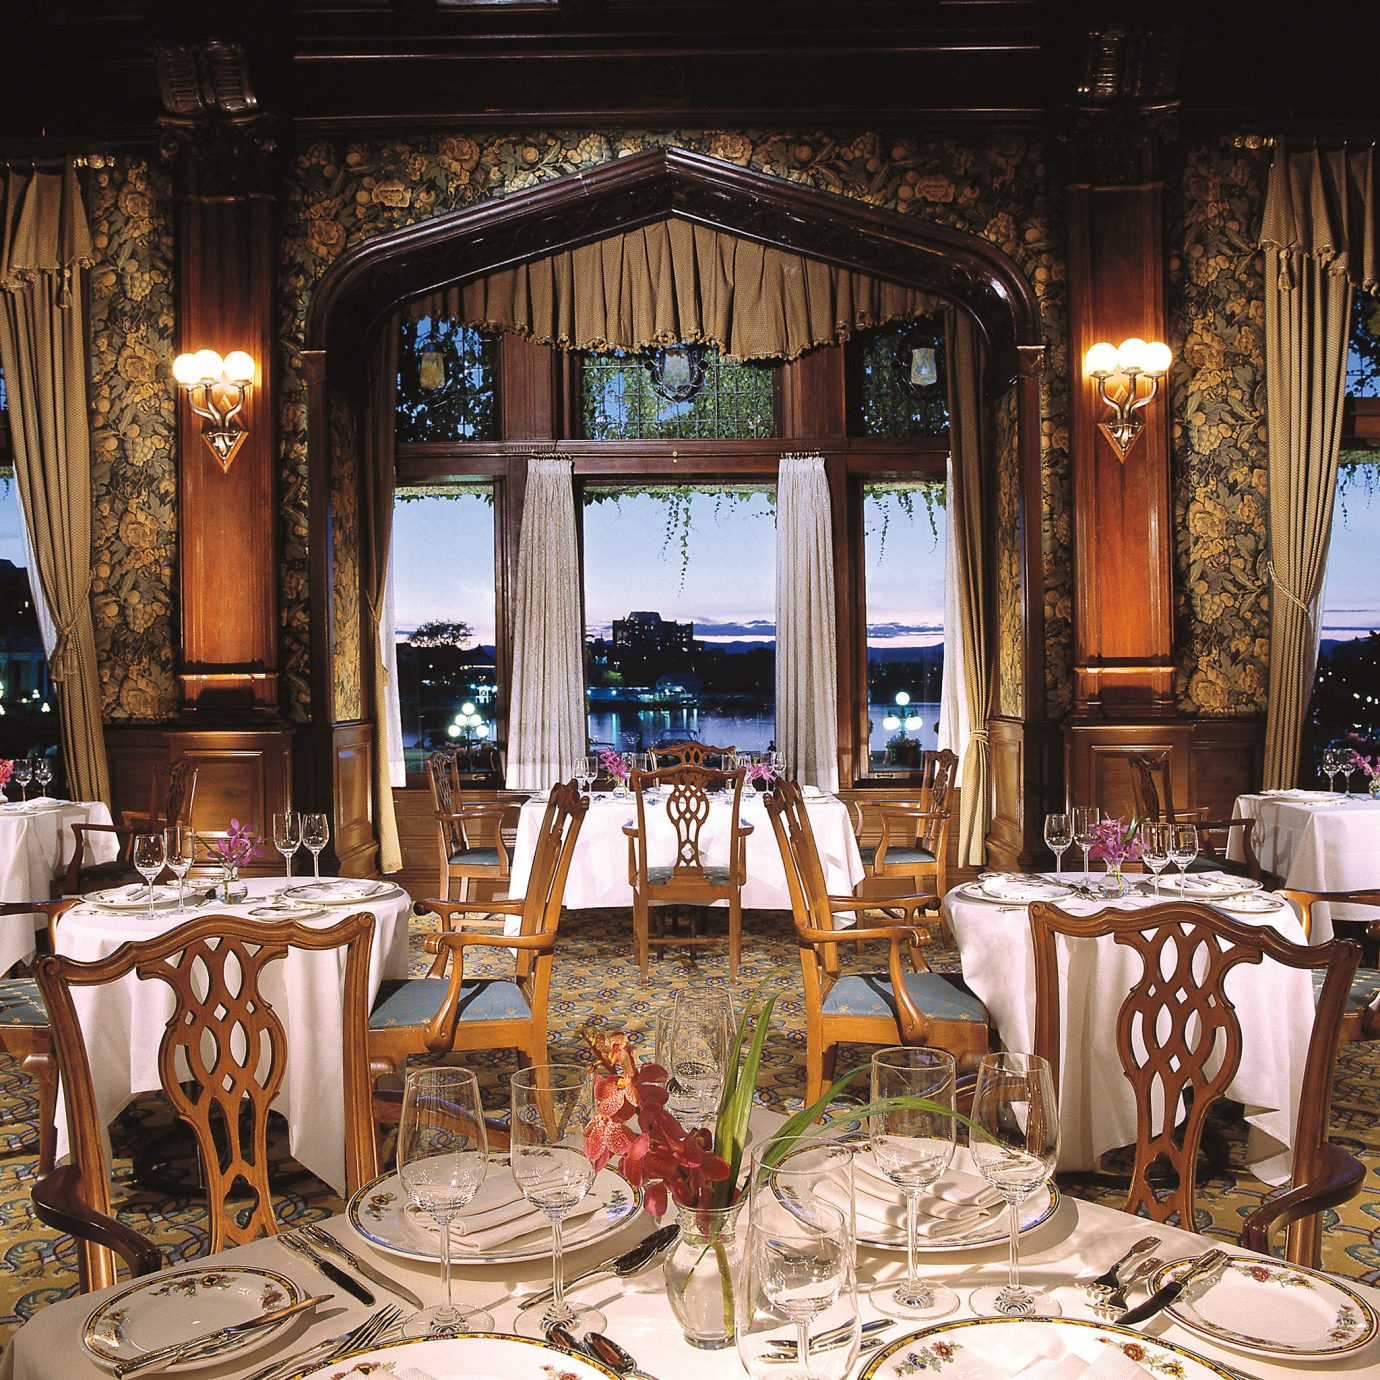 Dining Drink Eat Family Resort Scenic views chair restaurant palace function hall mansion dining table ballroom